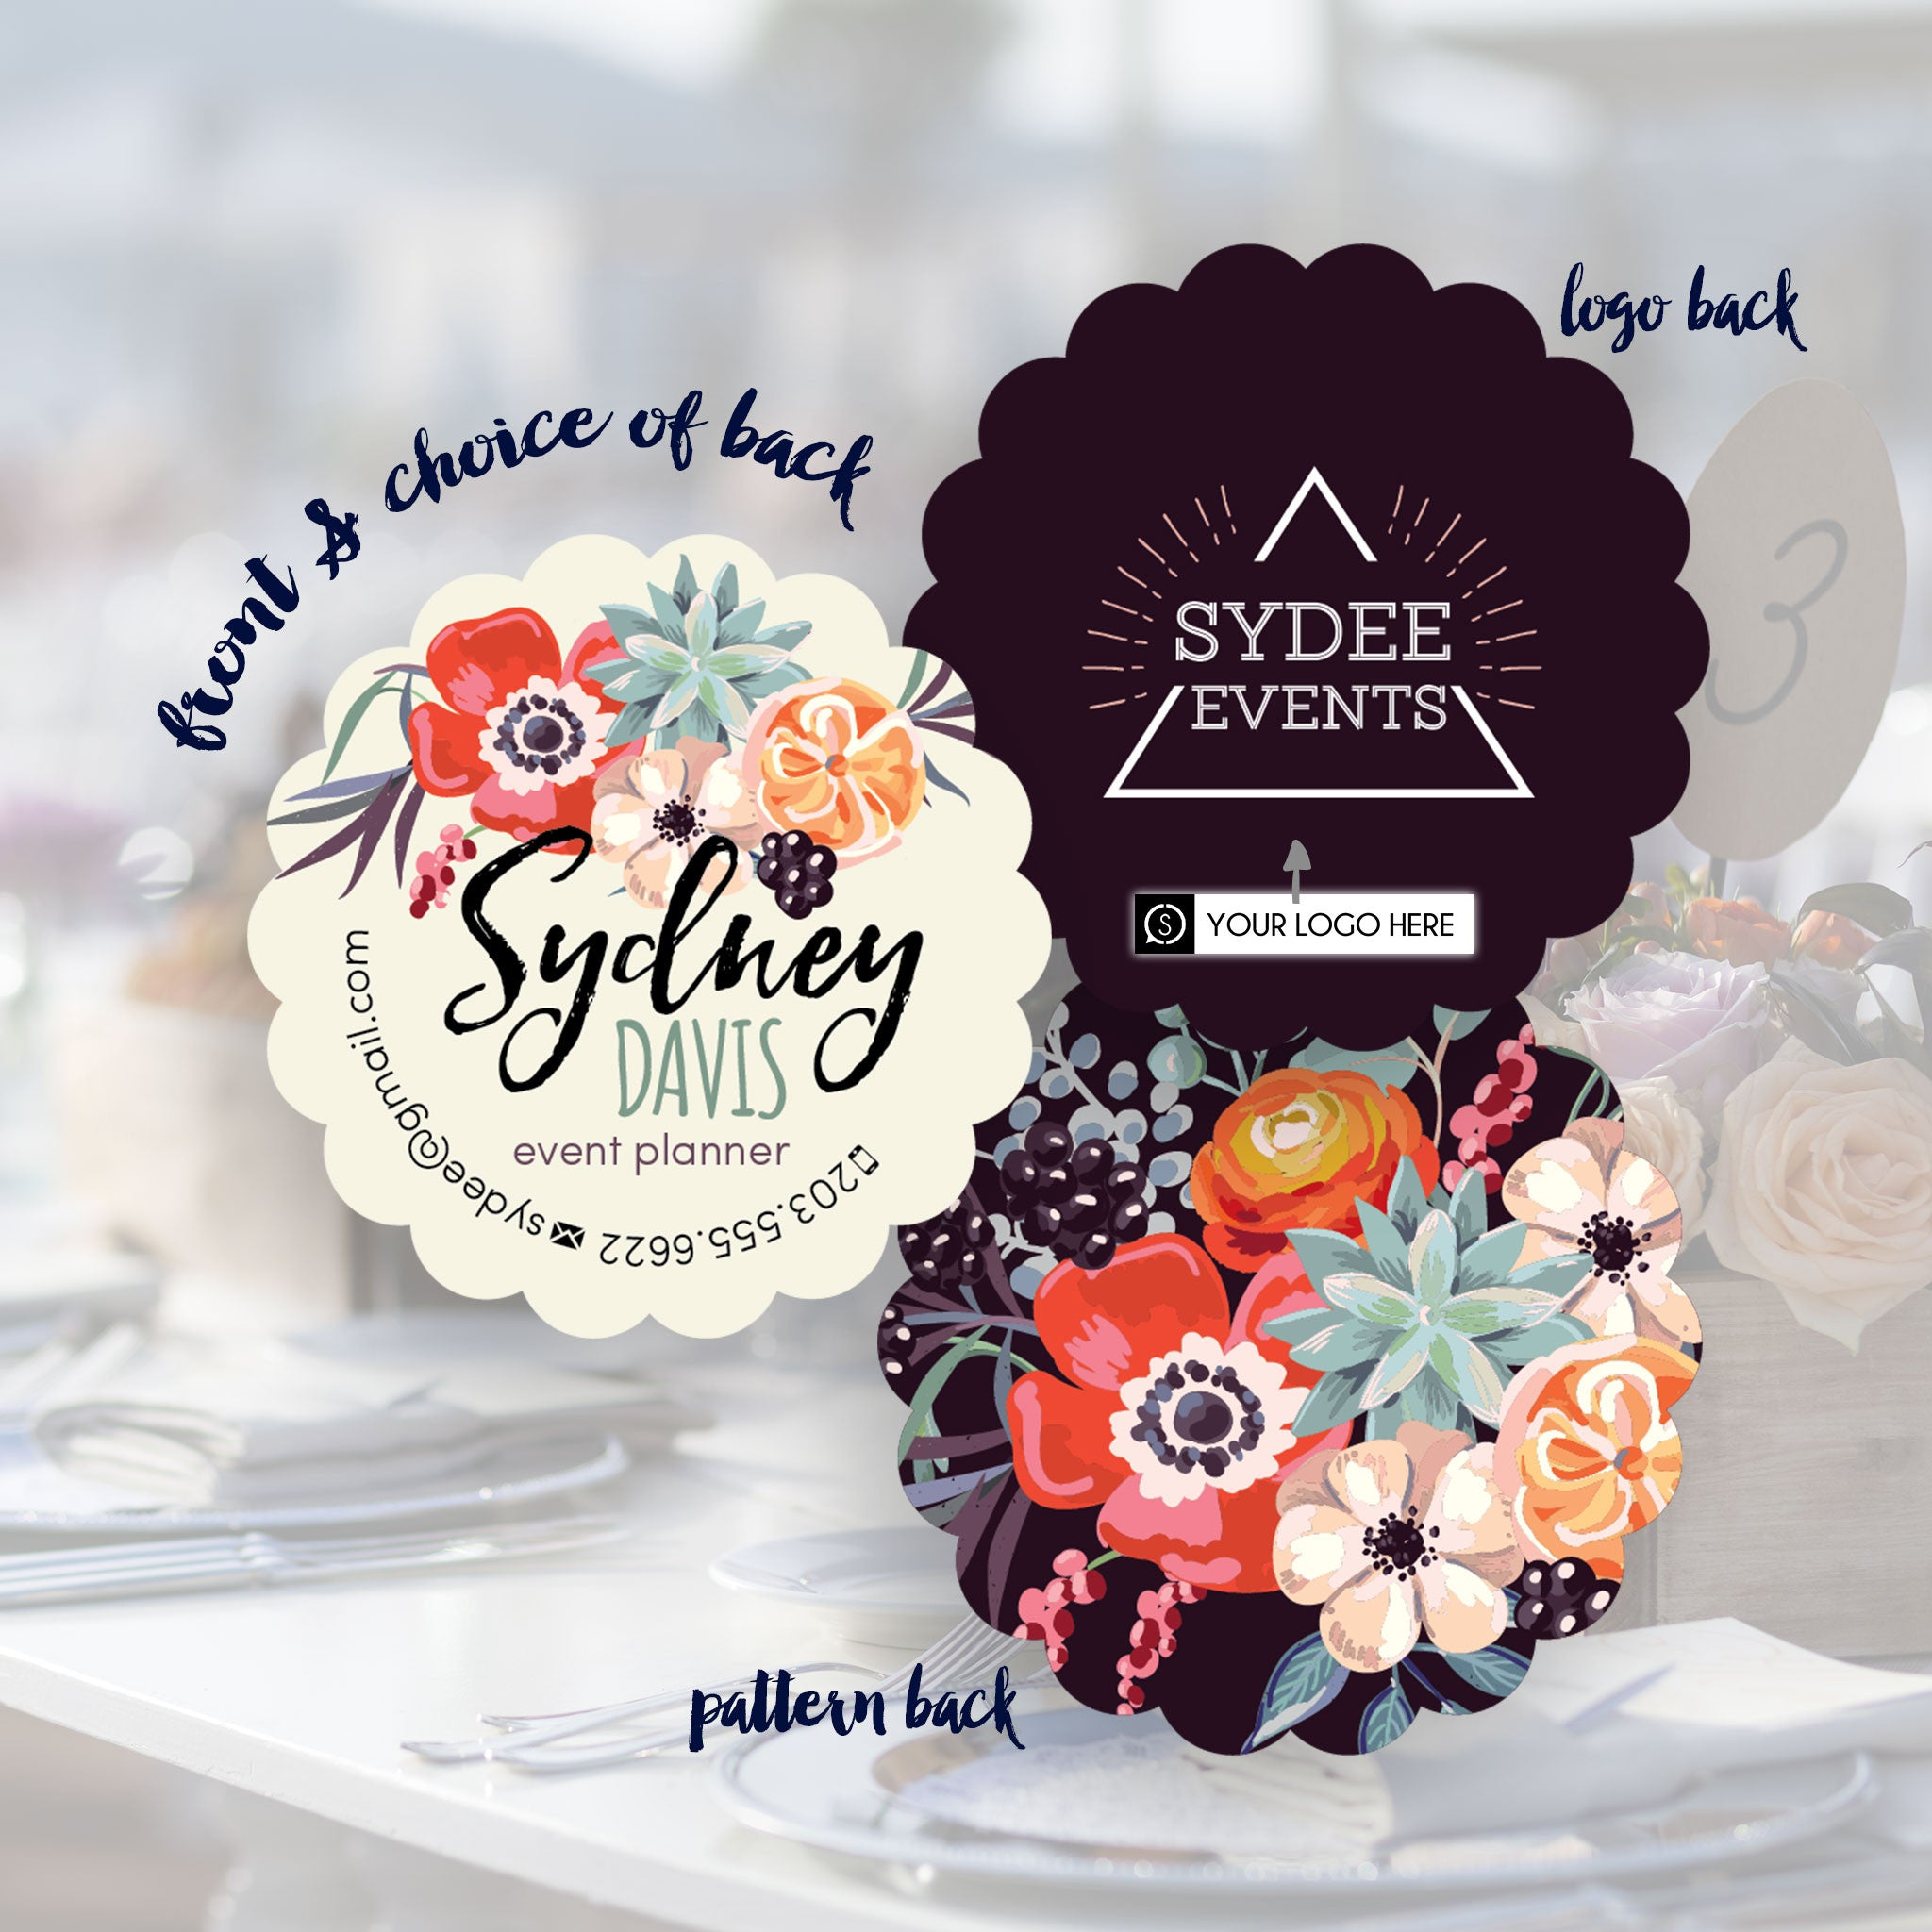 Sydney - Business Cards